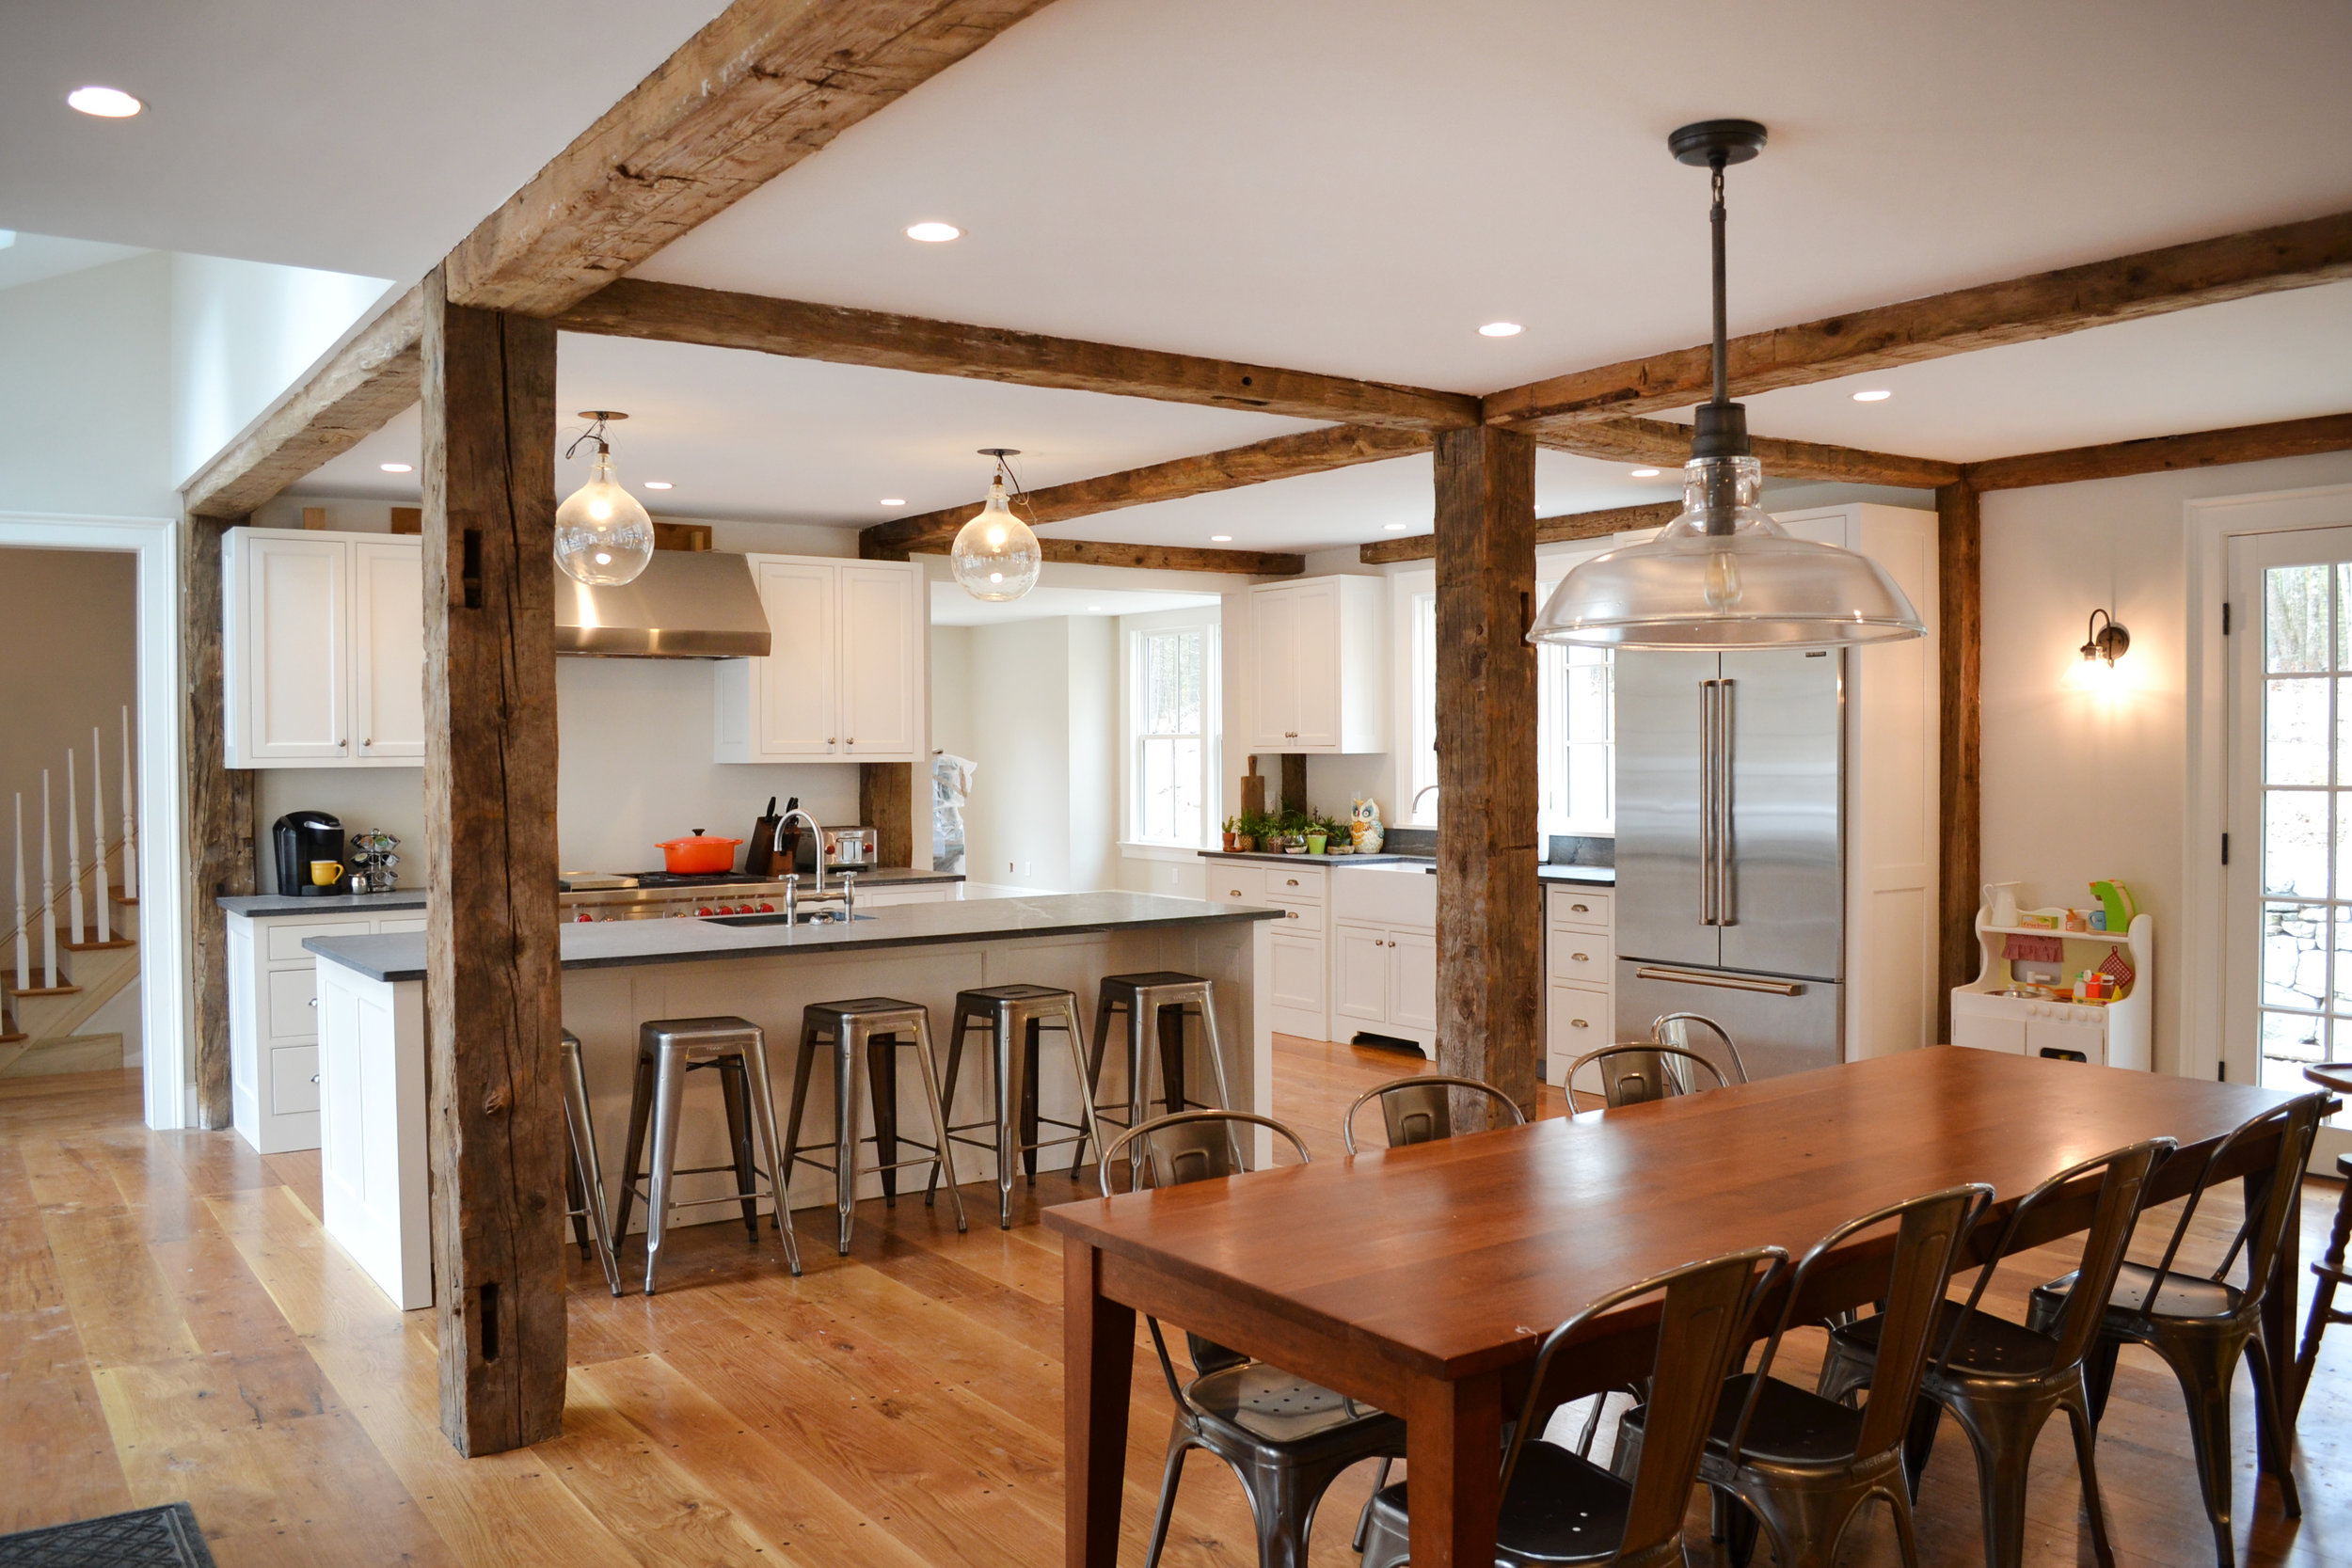 Historic Farm House | Dickinson Architects, LLC | Acton, MA